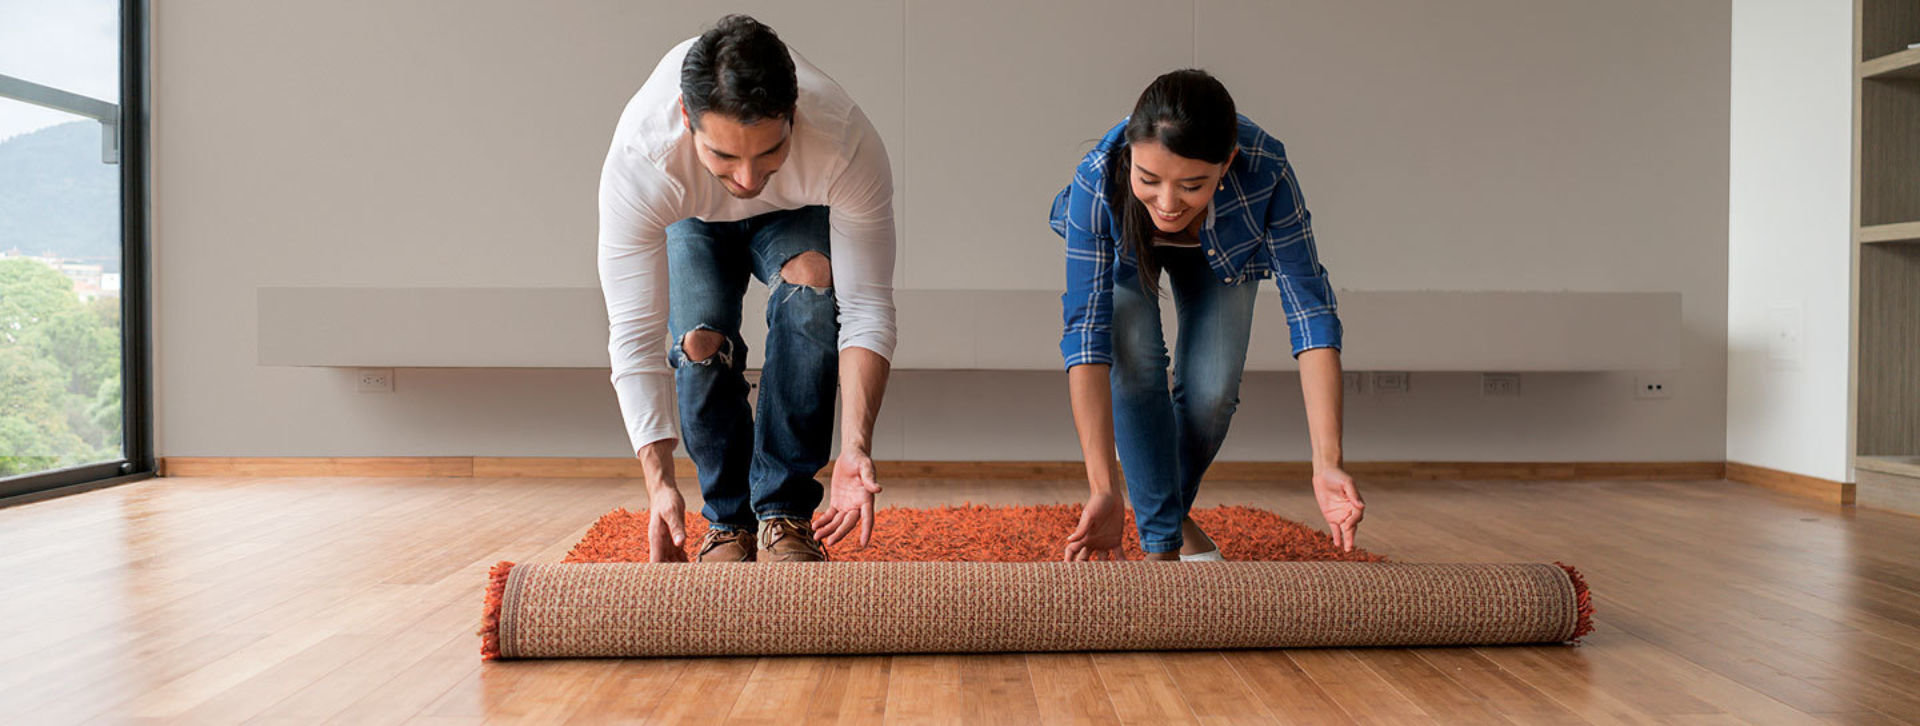 Man and woman rolling out a rug